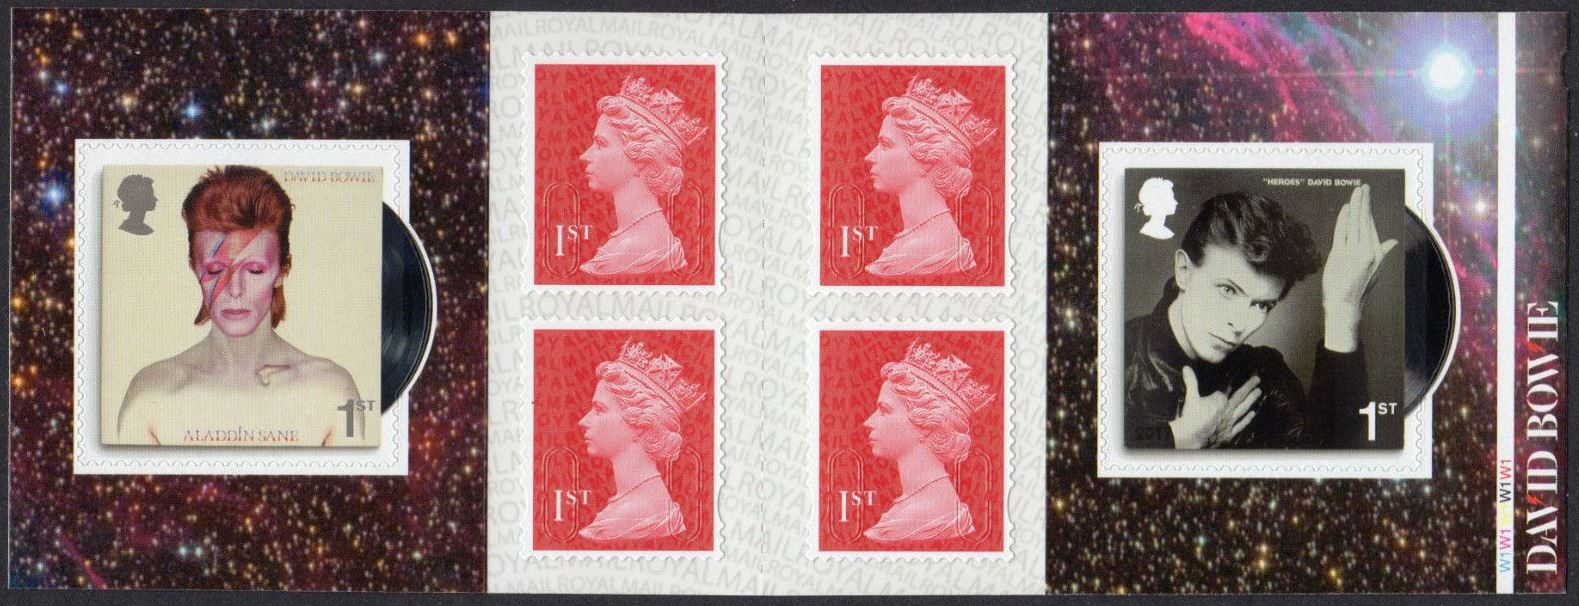 "2017 GB - PM56 D. Bowie (W) Mixed Bklt of 6 ""MCIL/M17L"" Cyl W1"